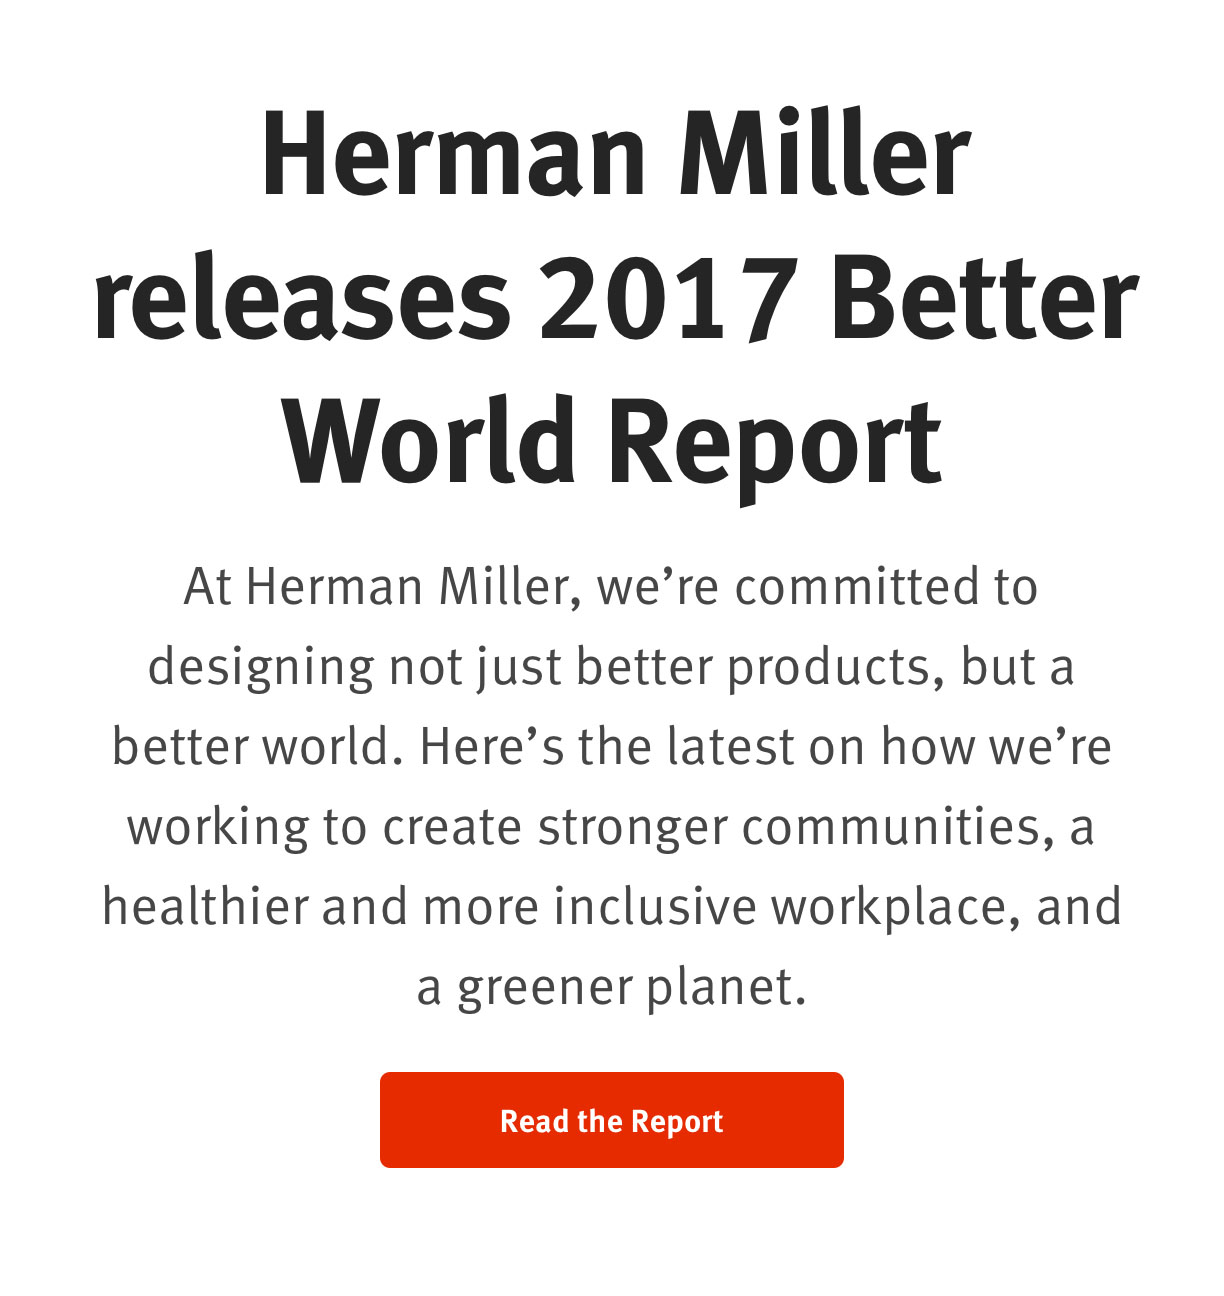 Herman Miller releases 2017 Better World Report   At Herman Miller, we're committed to designing not just better products, but a better world. Here's the latest on how we're working to create stronger communities, a healthier and more inclusive workplace, and a greener planet.  Read the report